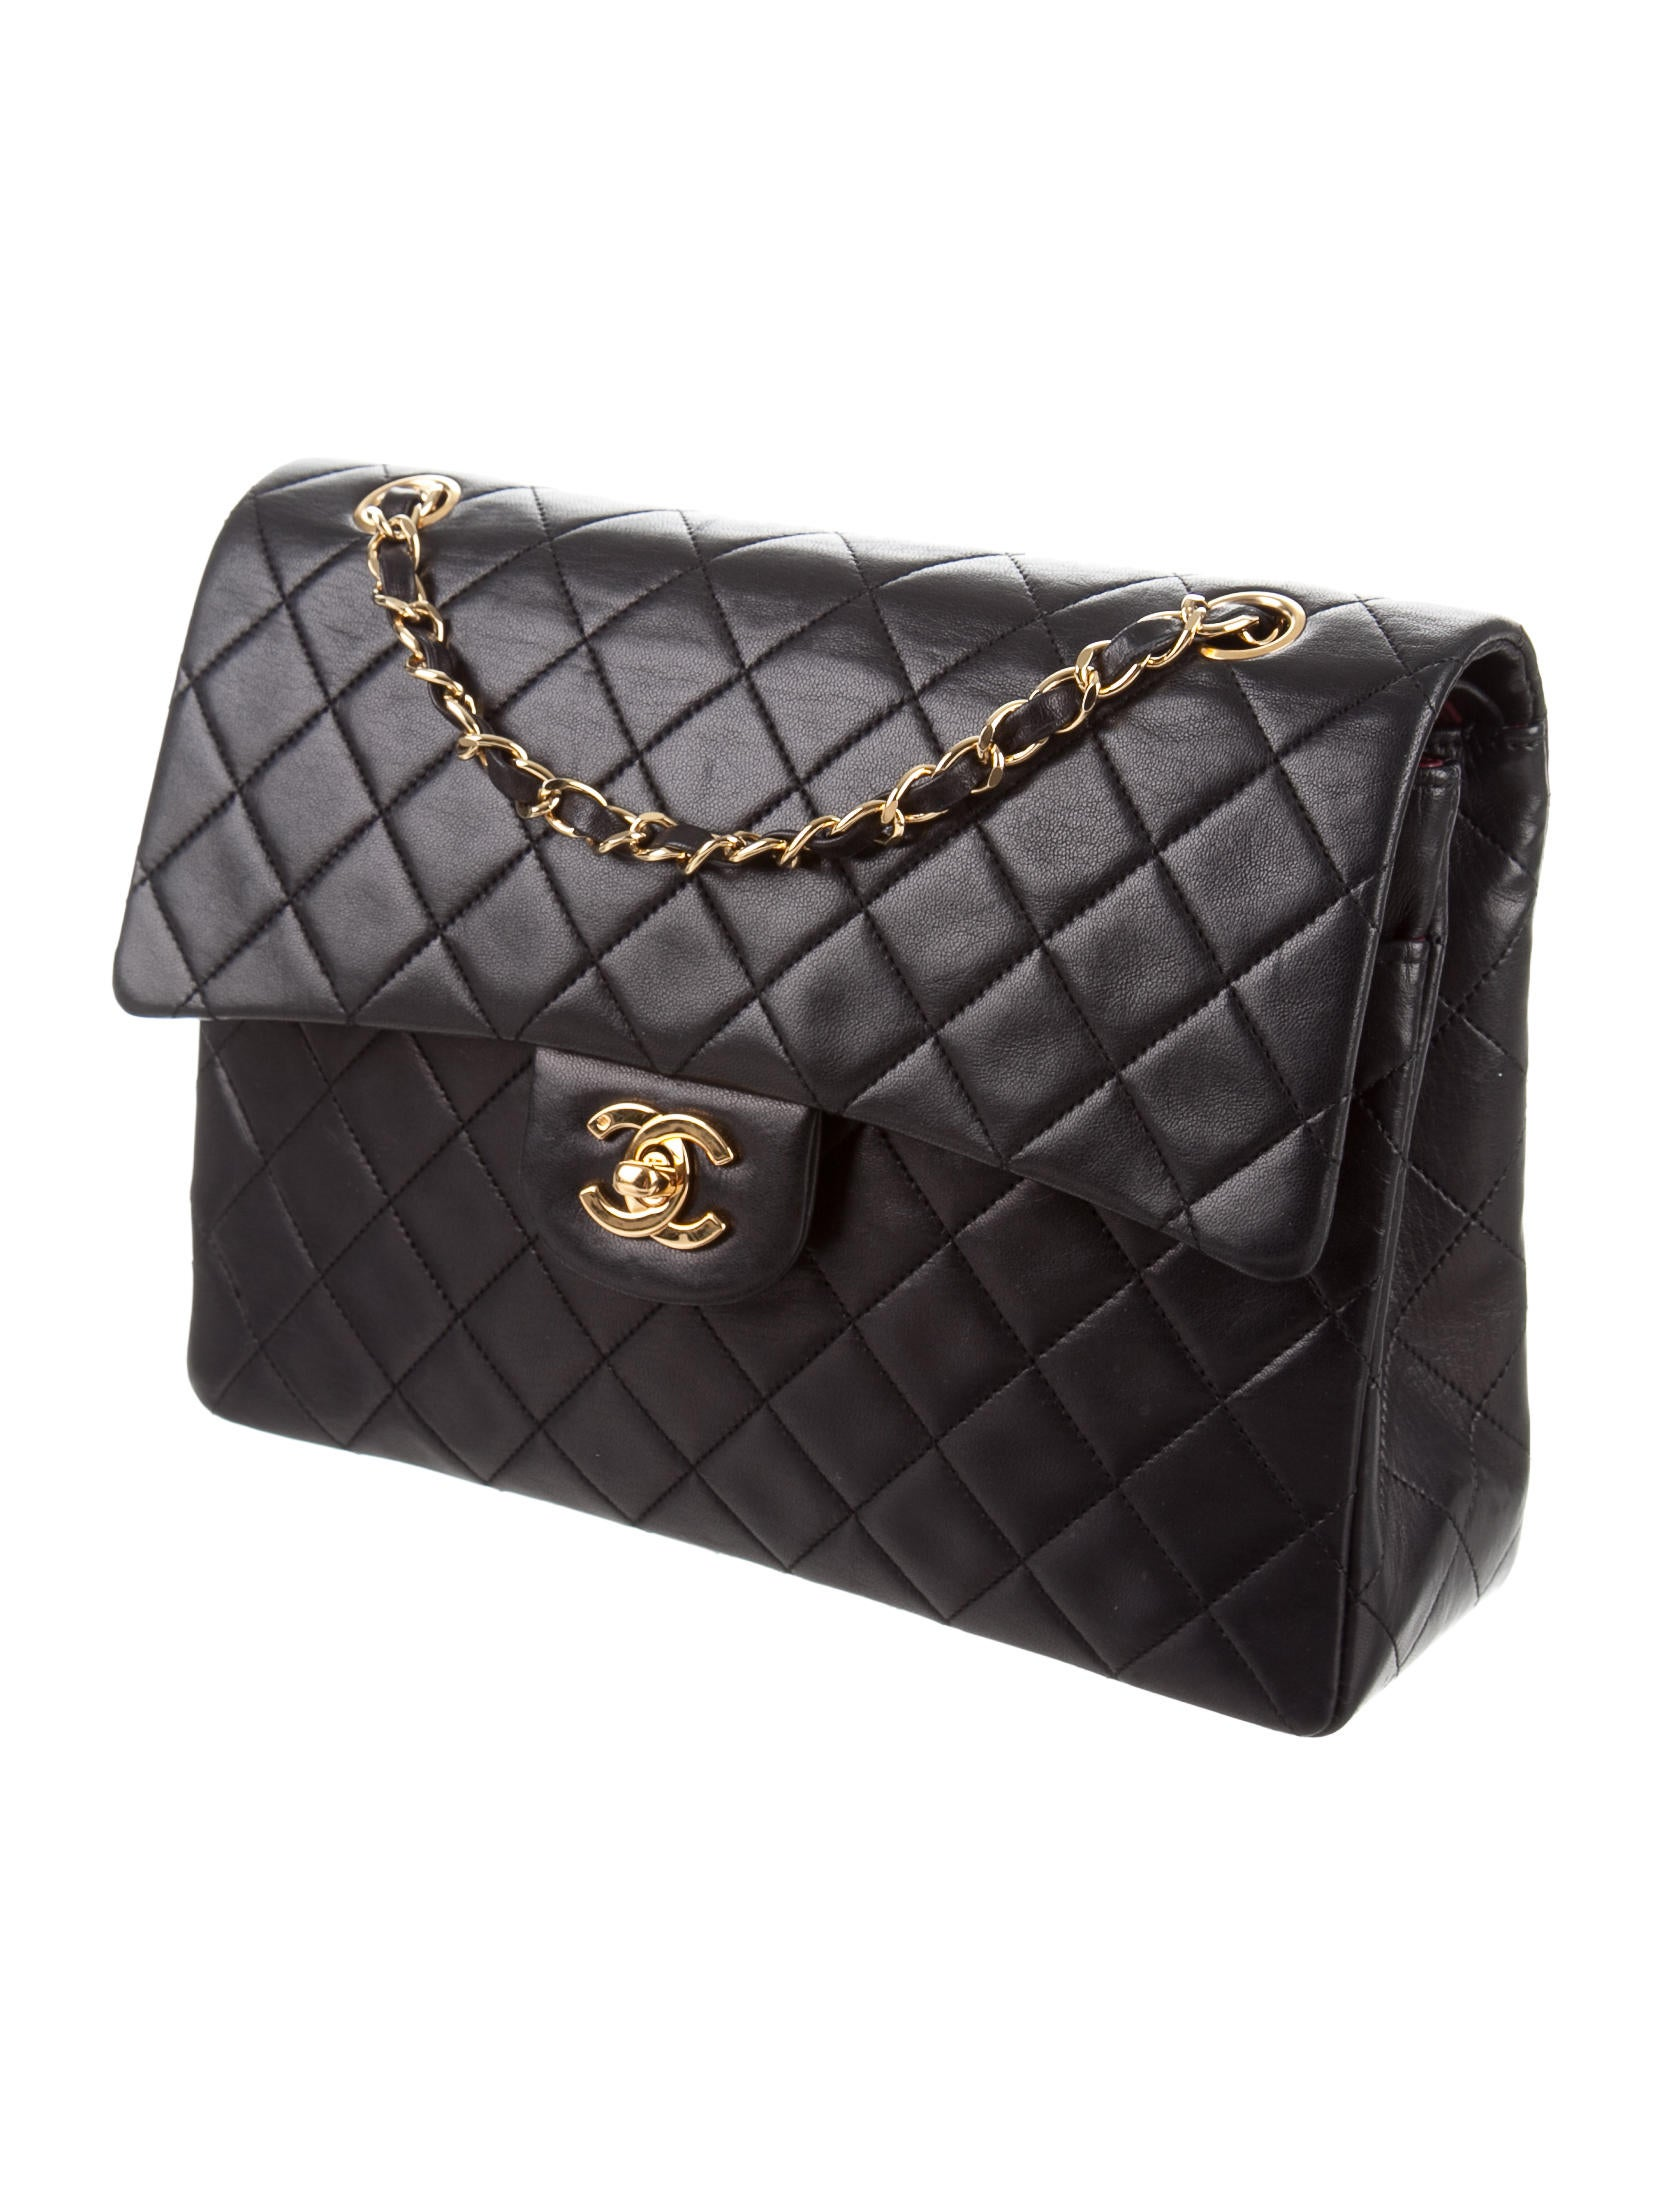 6290abb035fa31 Chanel Classic Quilted Bag | Stanford Center for Opportunity Policy ...